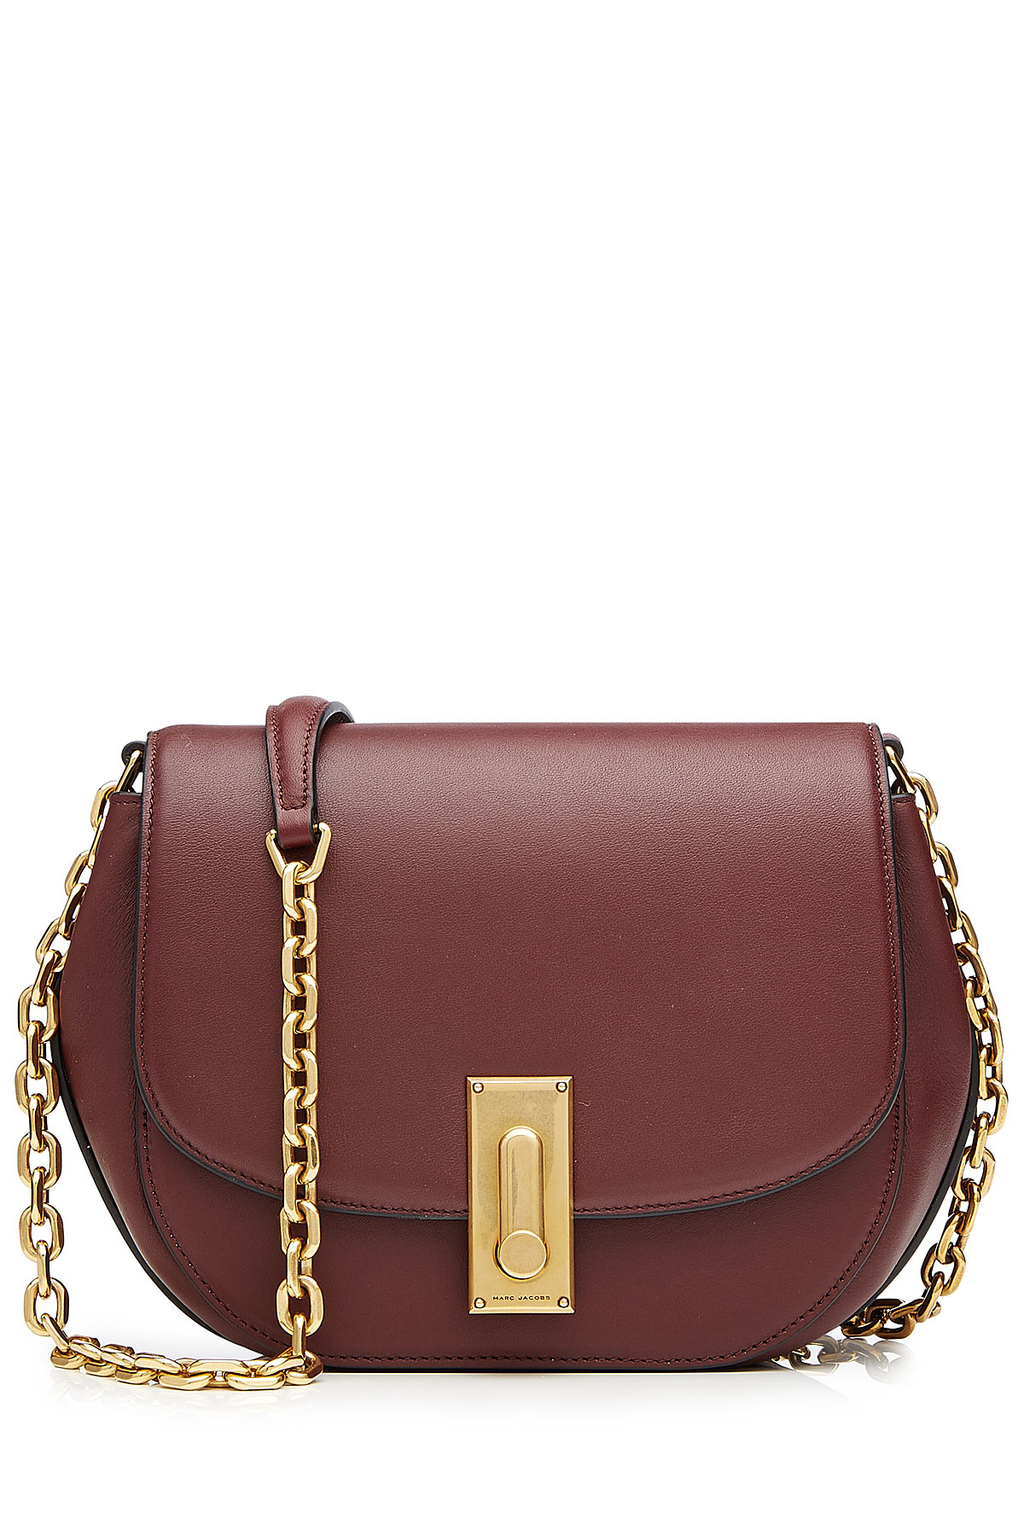 West End Leather Saddle Bag Red - predominant colour: burgundy; secondary colour: gold; occasions: casual, creative work; type of pattern: standard; style: saddle; length: across body/long; size: standard; material: leather; pattern: plain; finish: plain; embellishment: chain/metal; season: s/s 2016; wardrobe: highlight